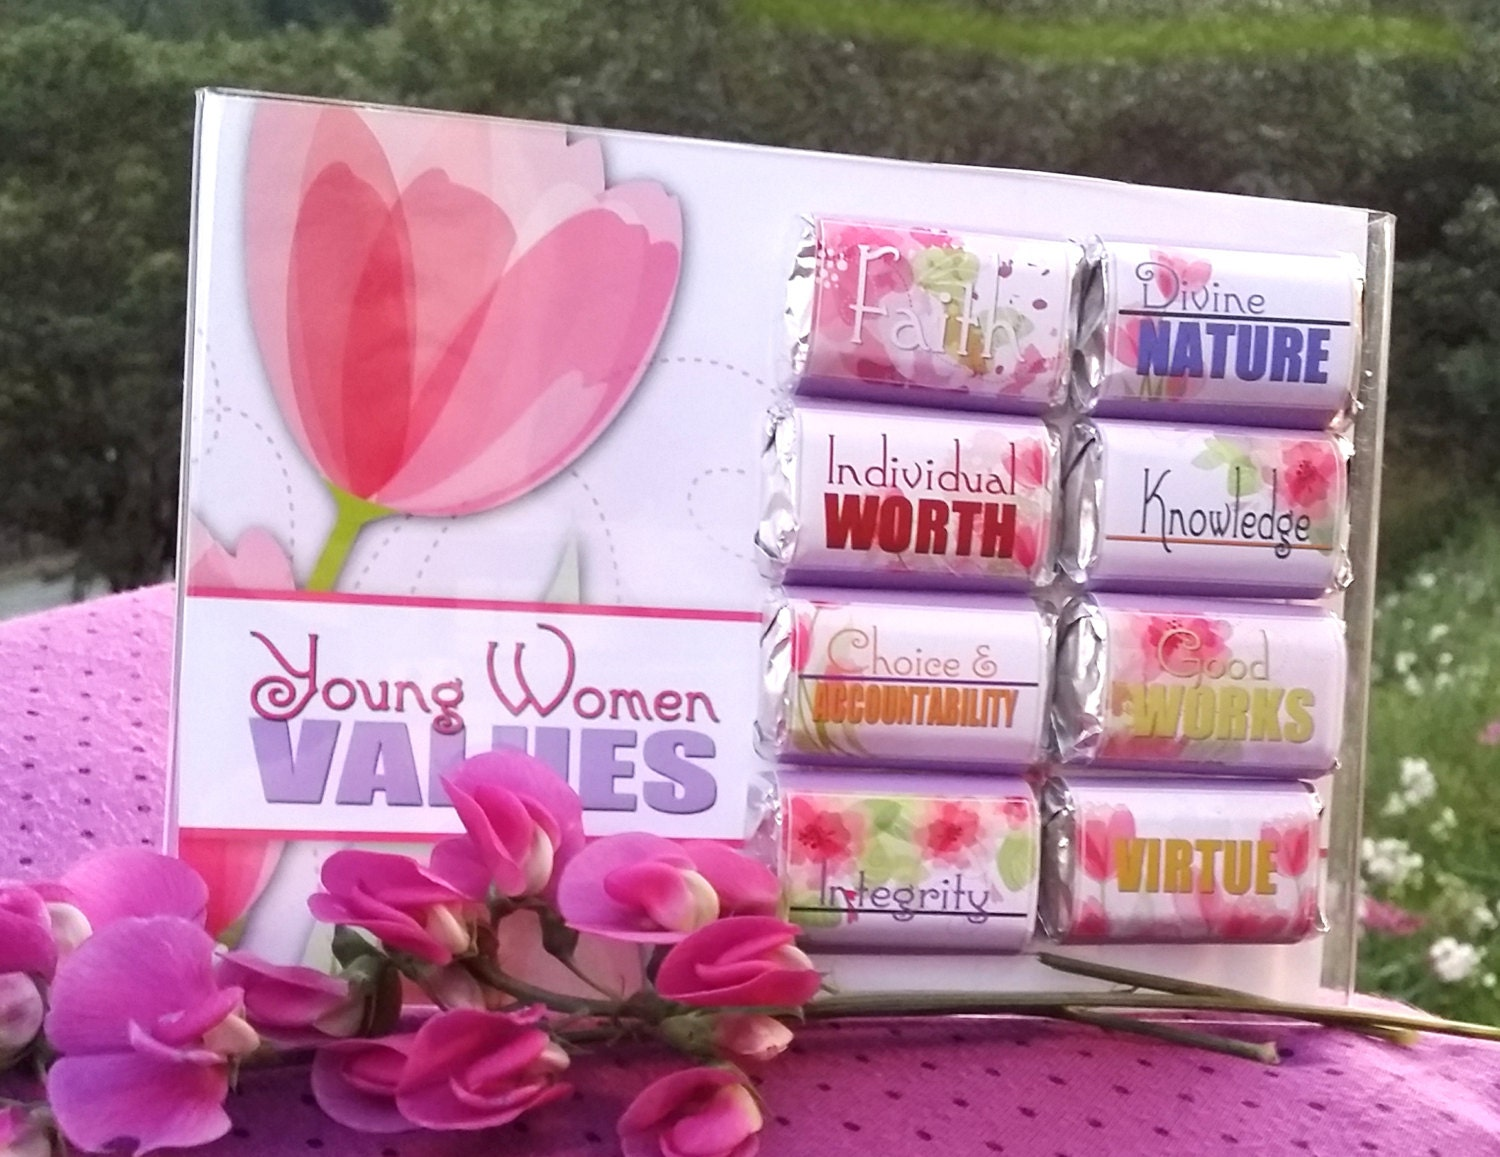 Printables Mini Candy Bar Wrappers YW Young Women Values | Etsy